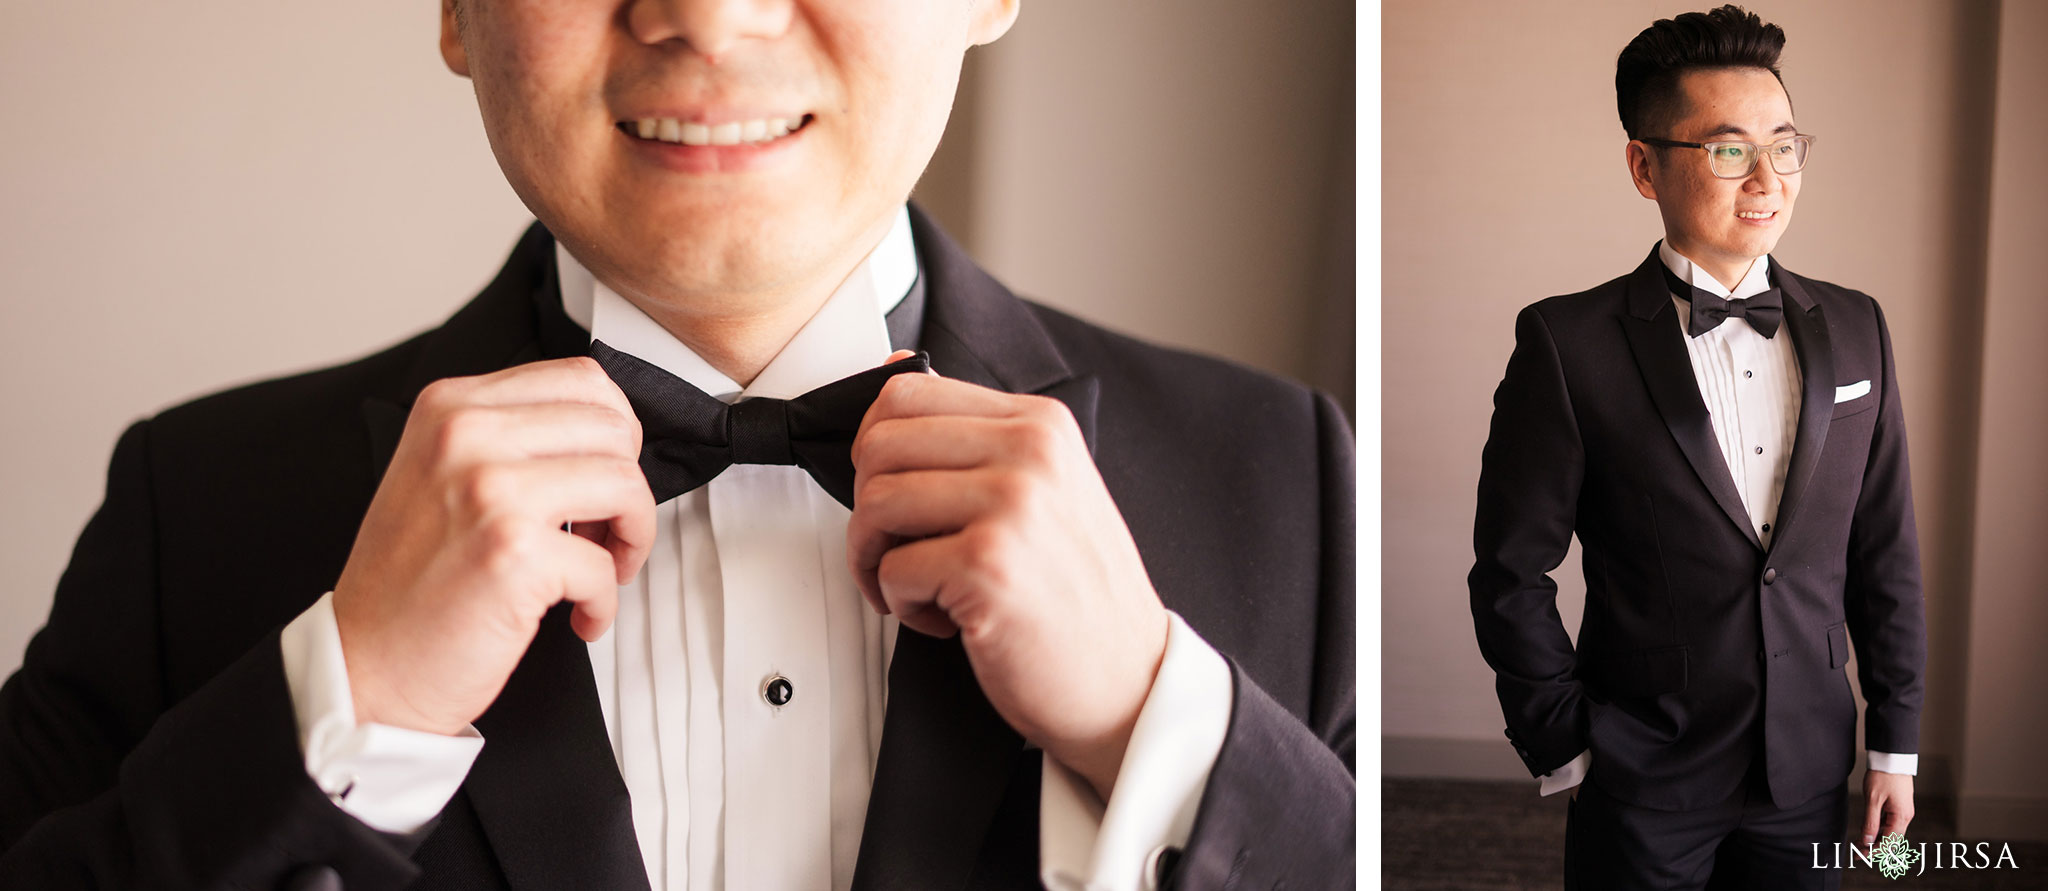 10 segerstrom center for the arts costa mesa wedding photography